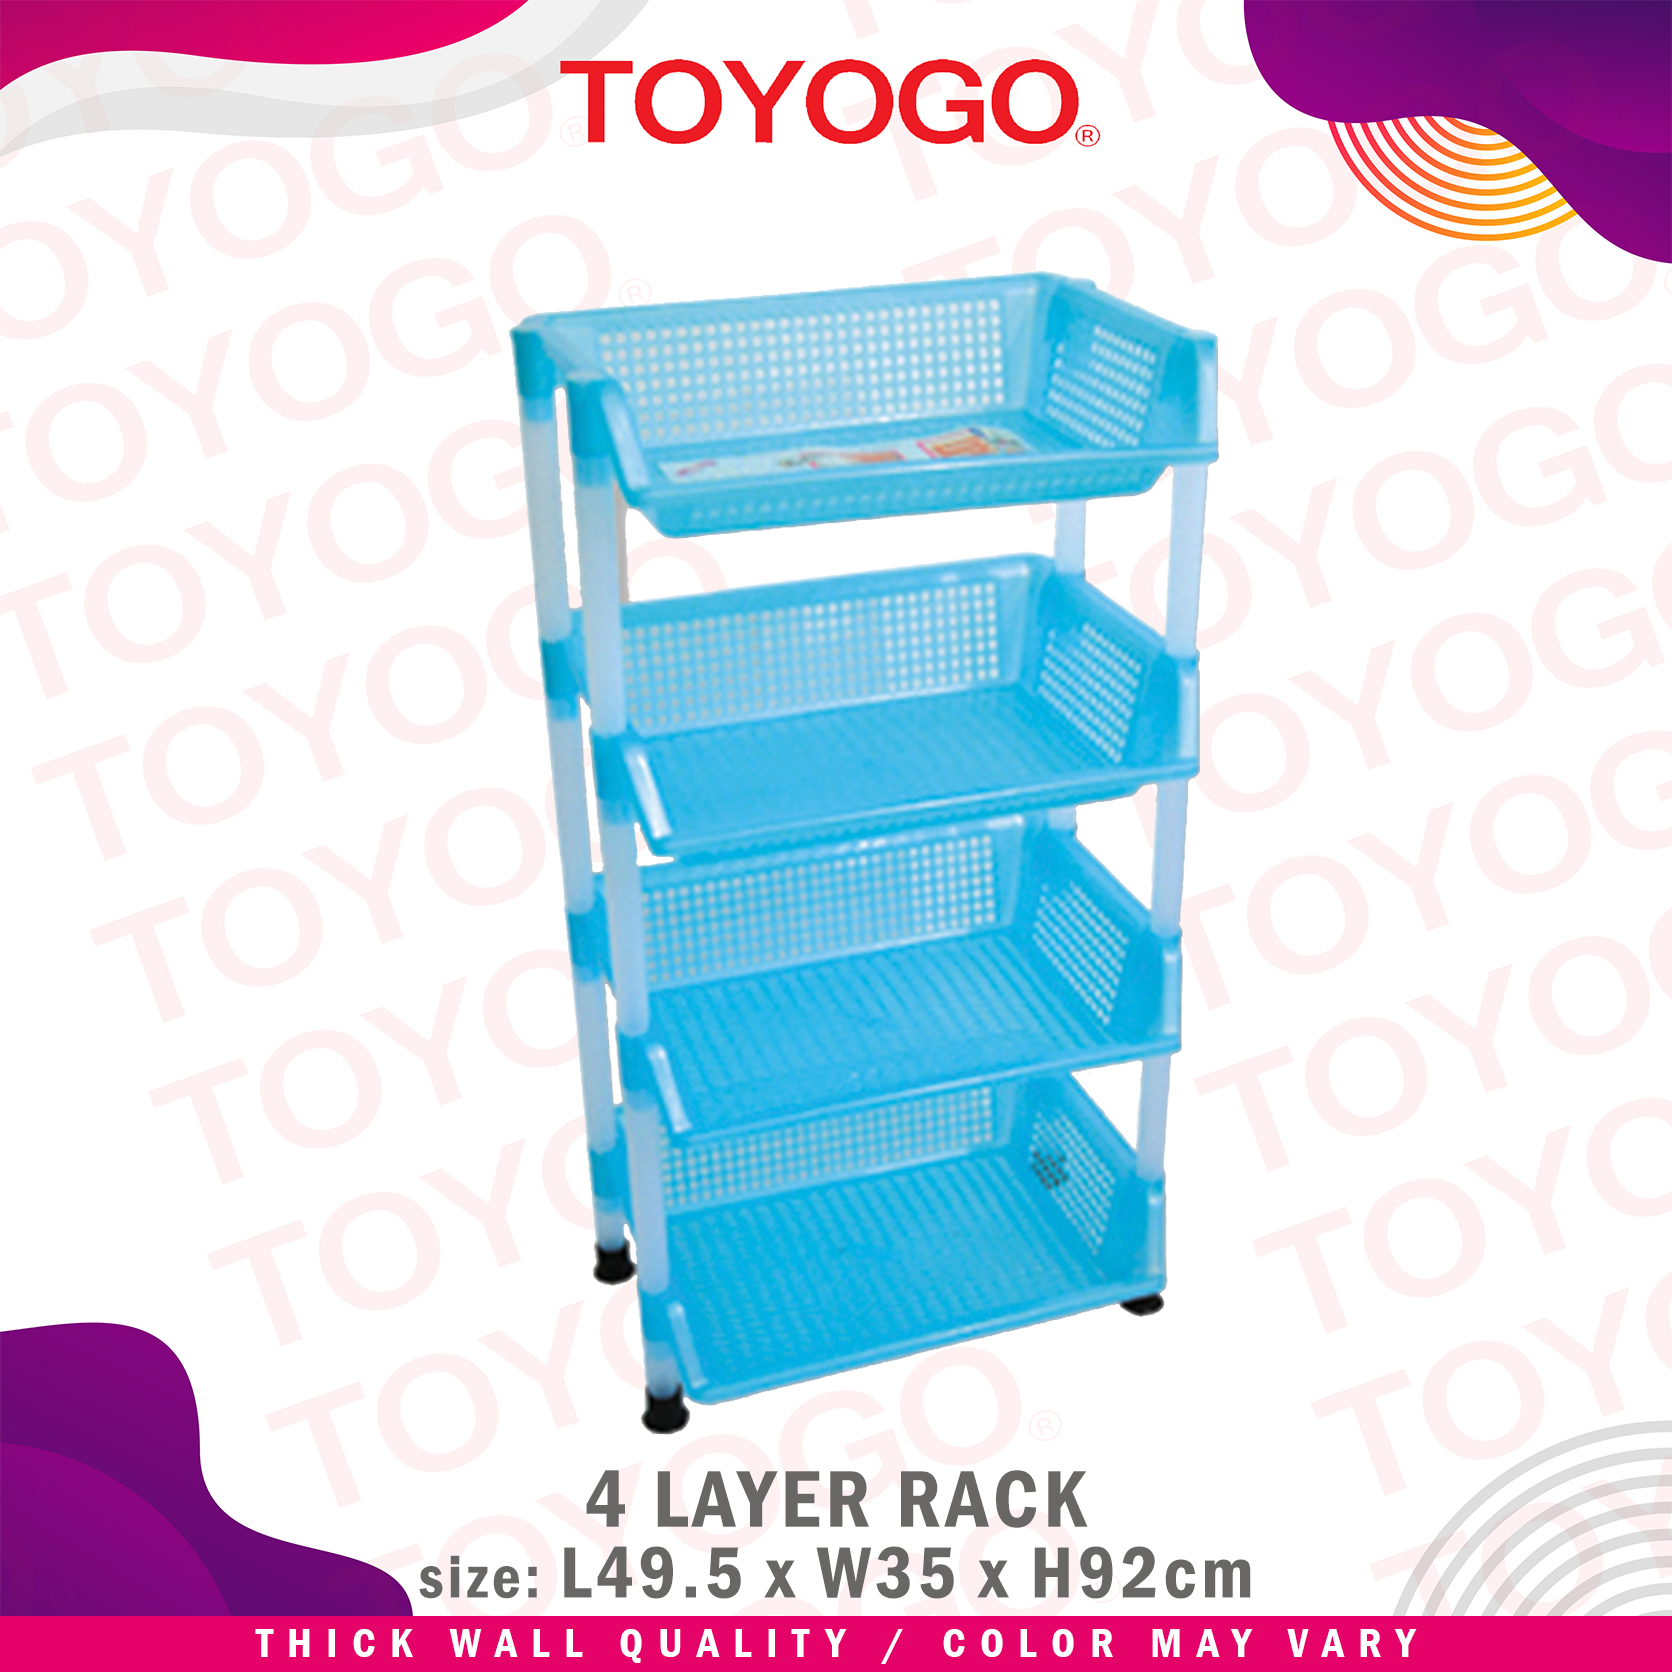 Toyogo Plastic Multipurpose Rack (4 Tier) (994-4)